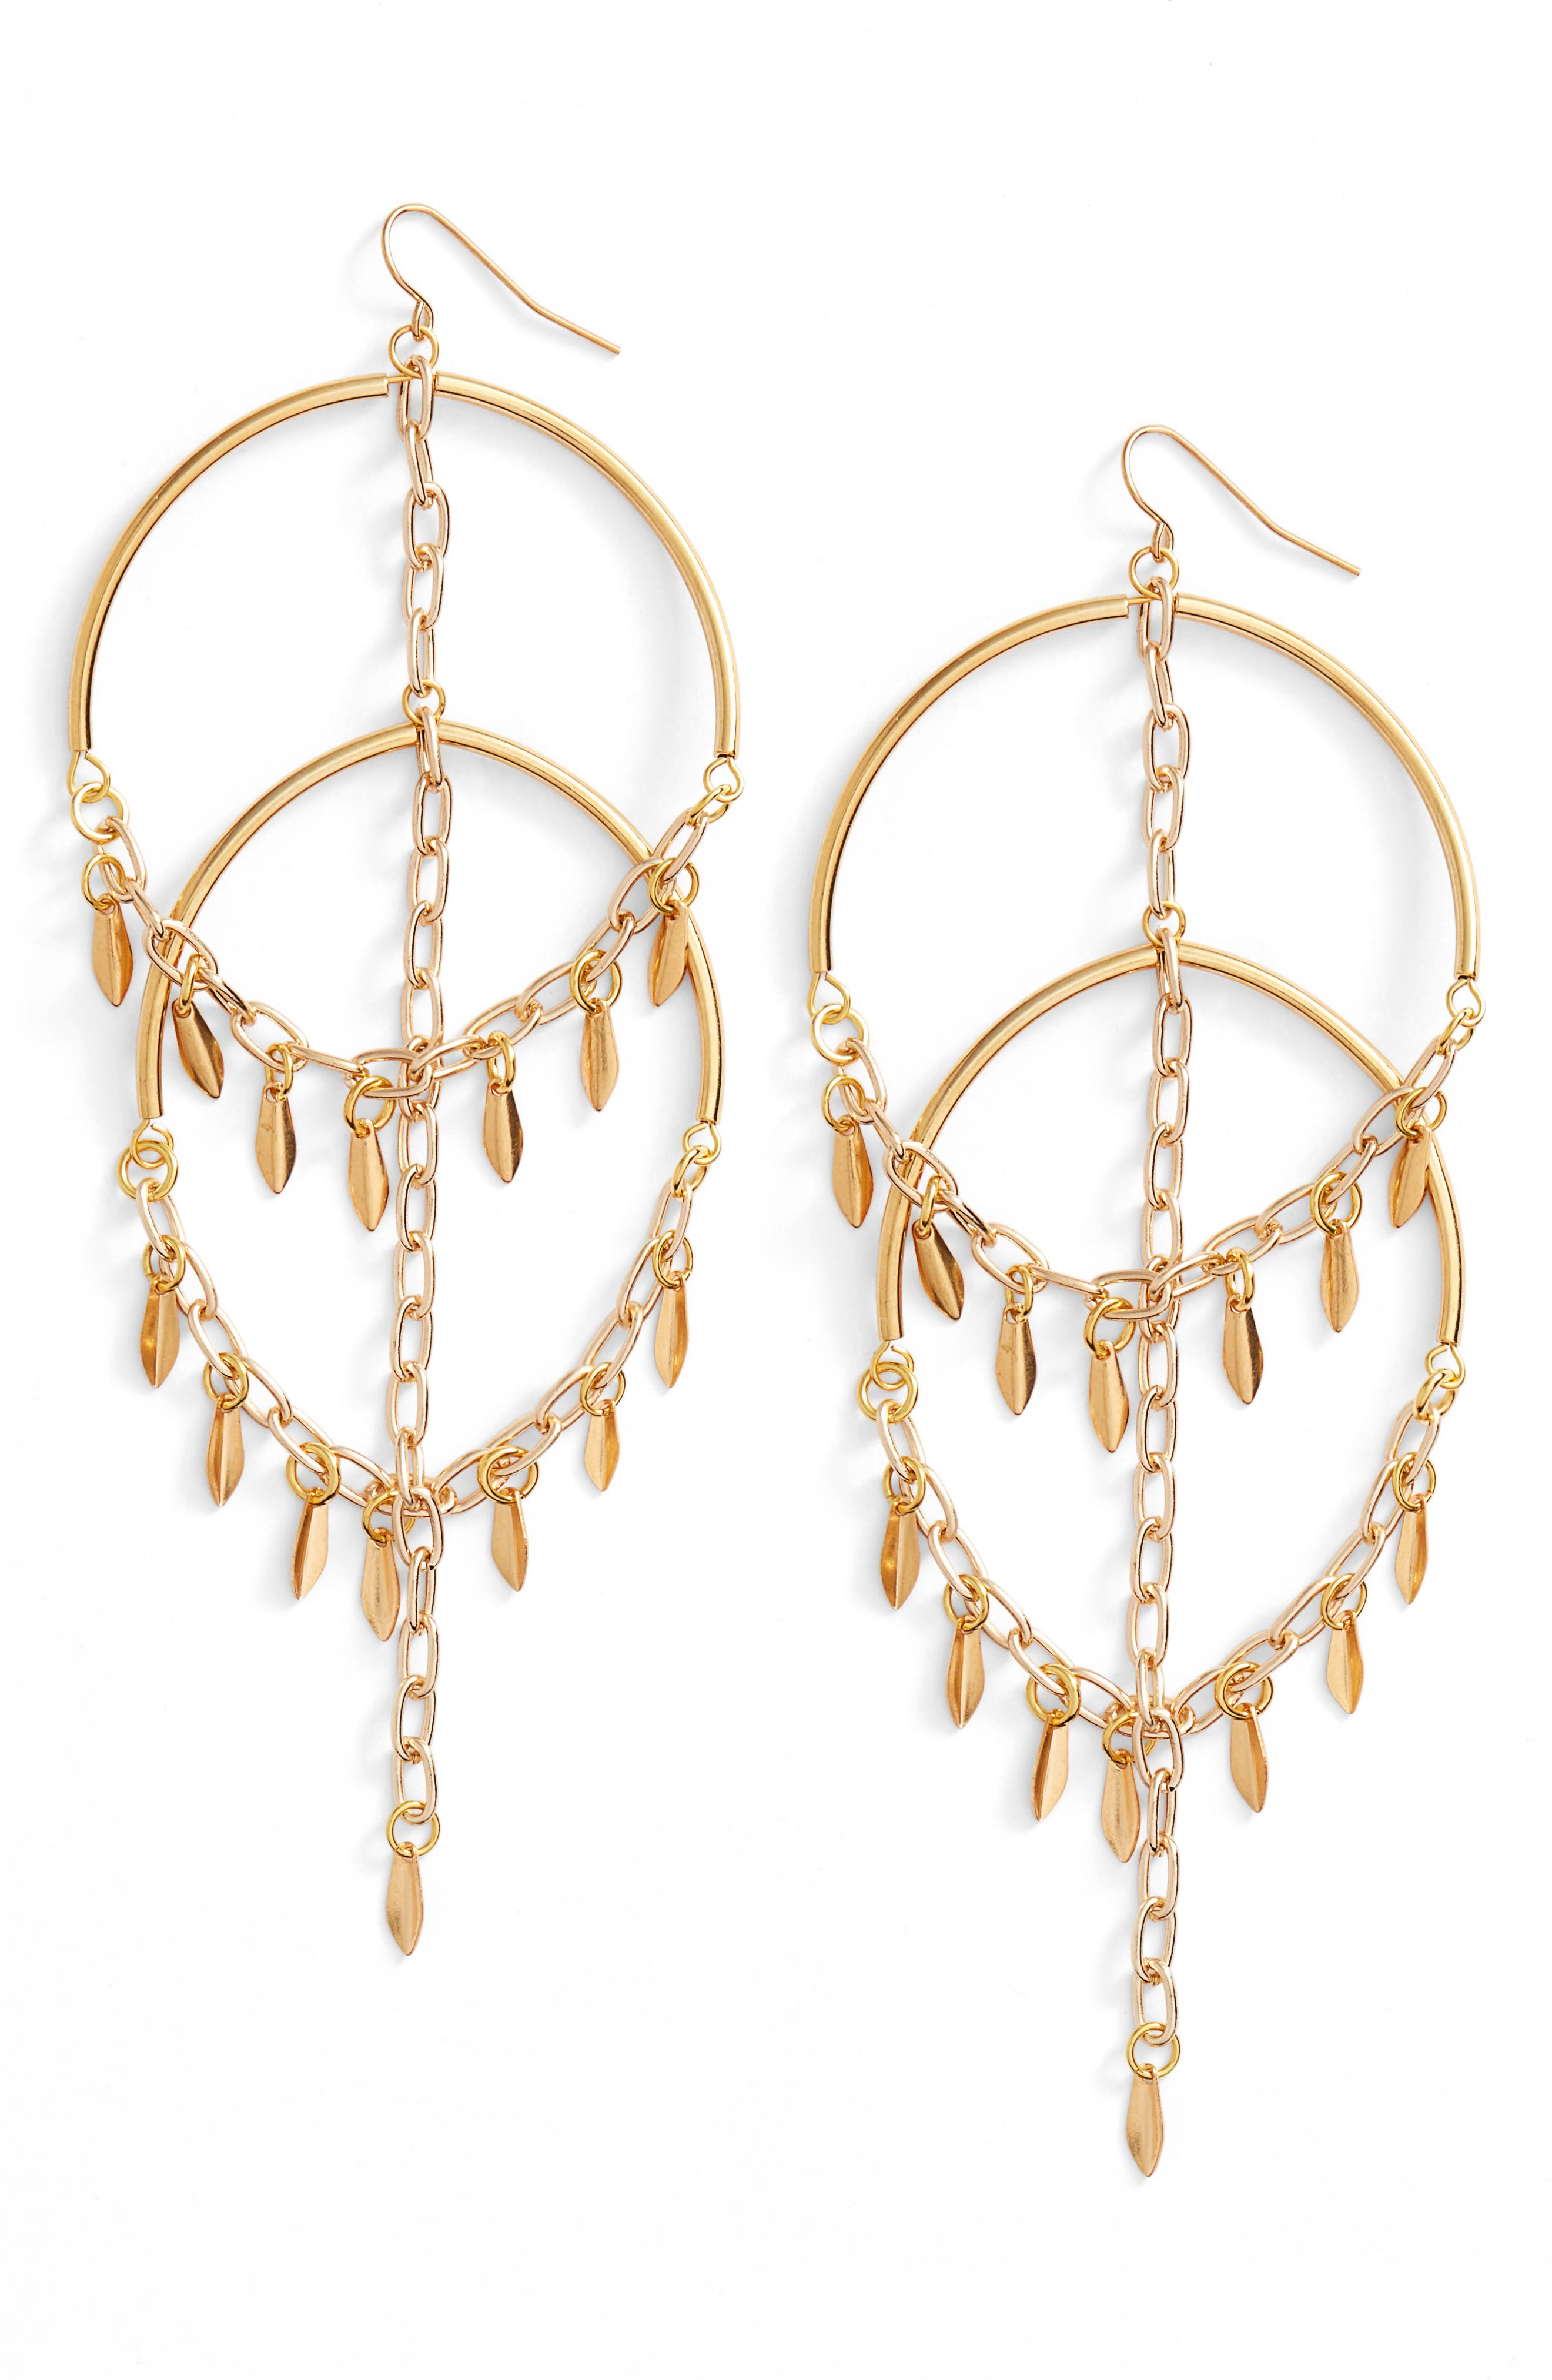 Cannes Chandelier Earrings,                             Main thumbnail 1, color,                             Gold